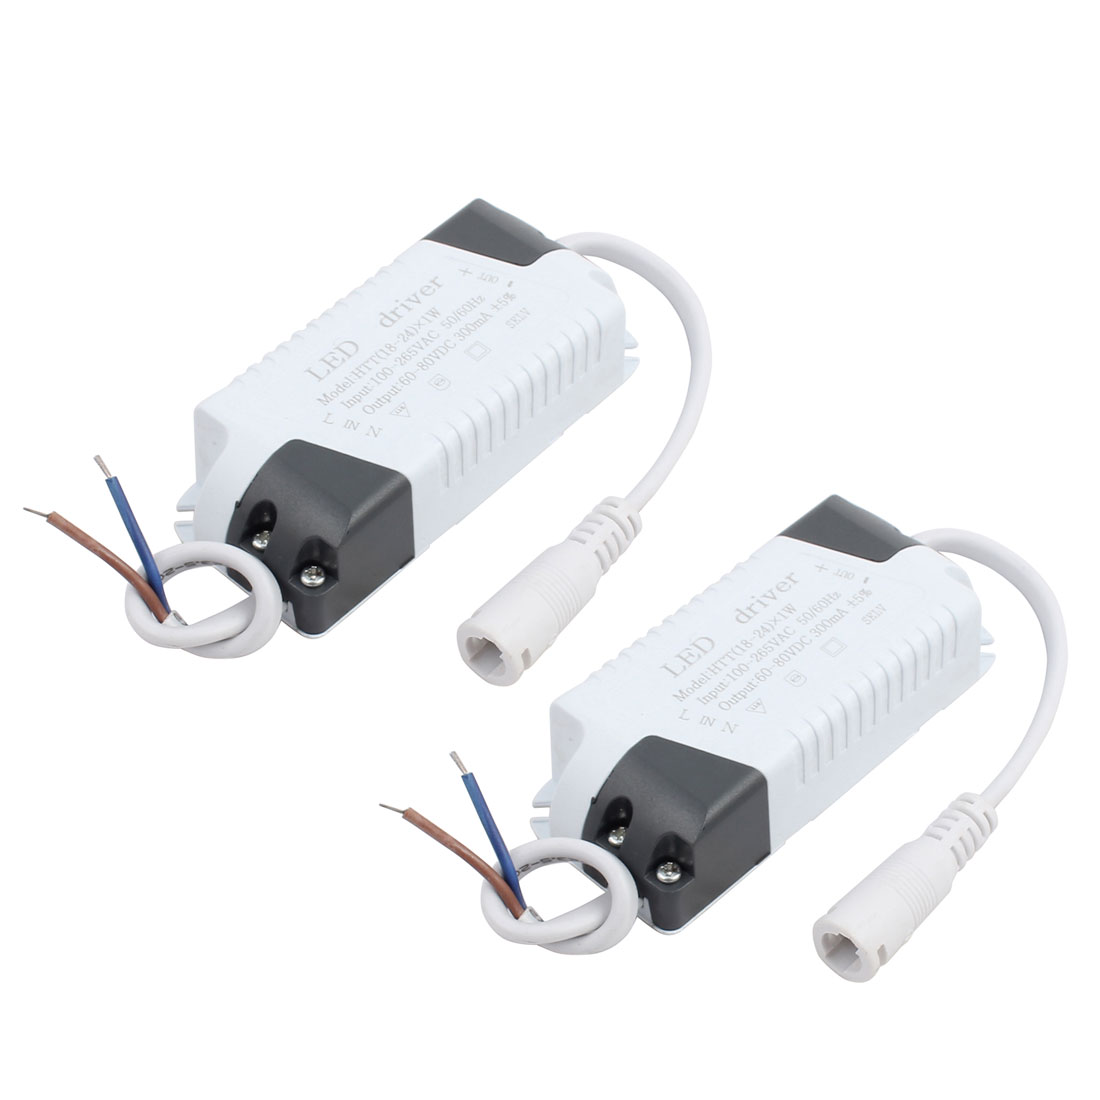 18-24W DC Female Connector Advanced Plastic Shell LED Driver Power Supply 2Pcs